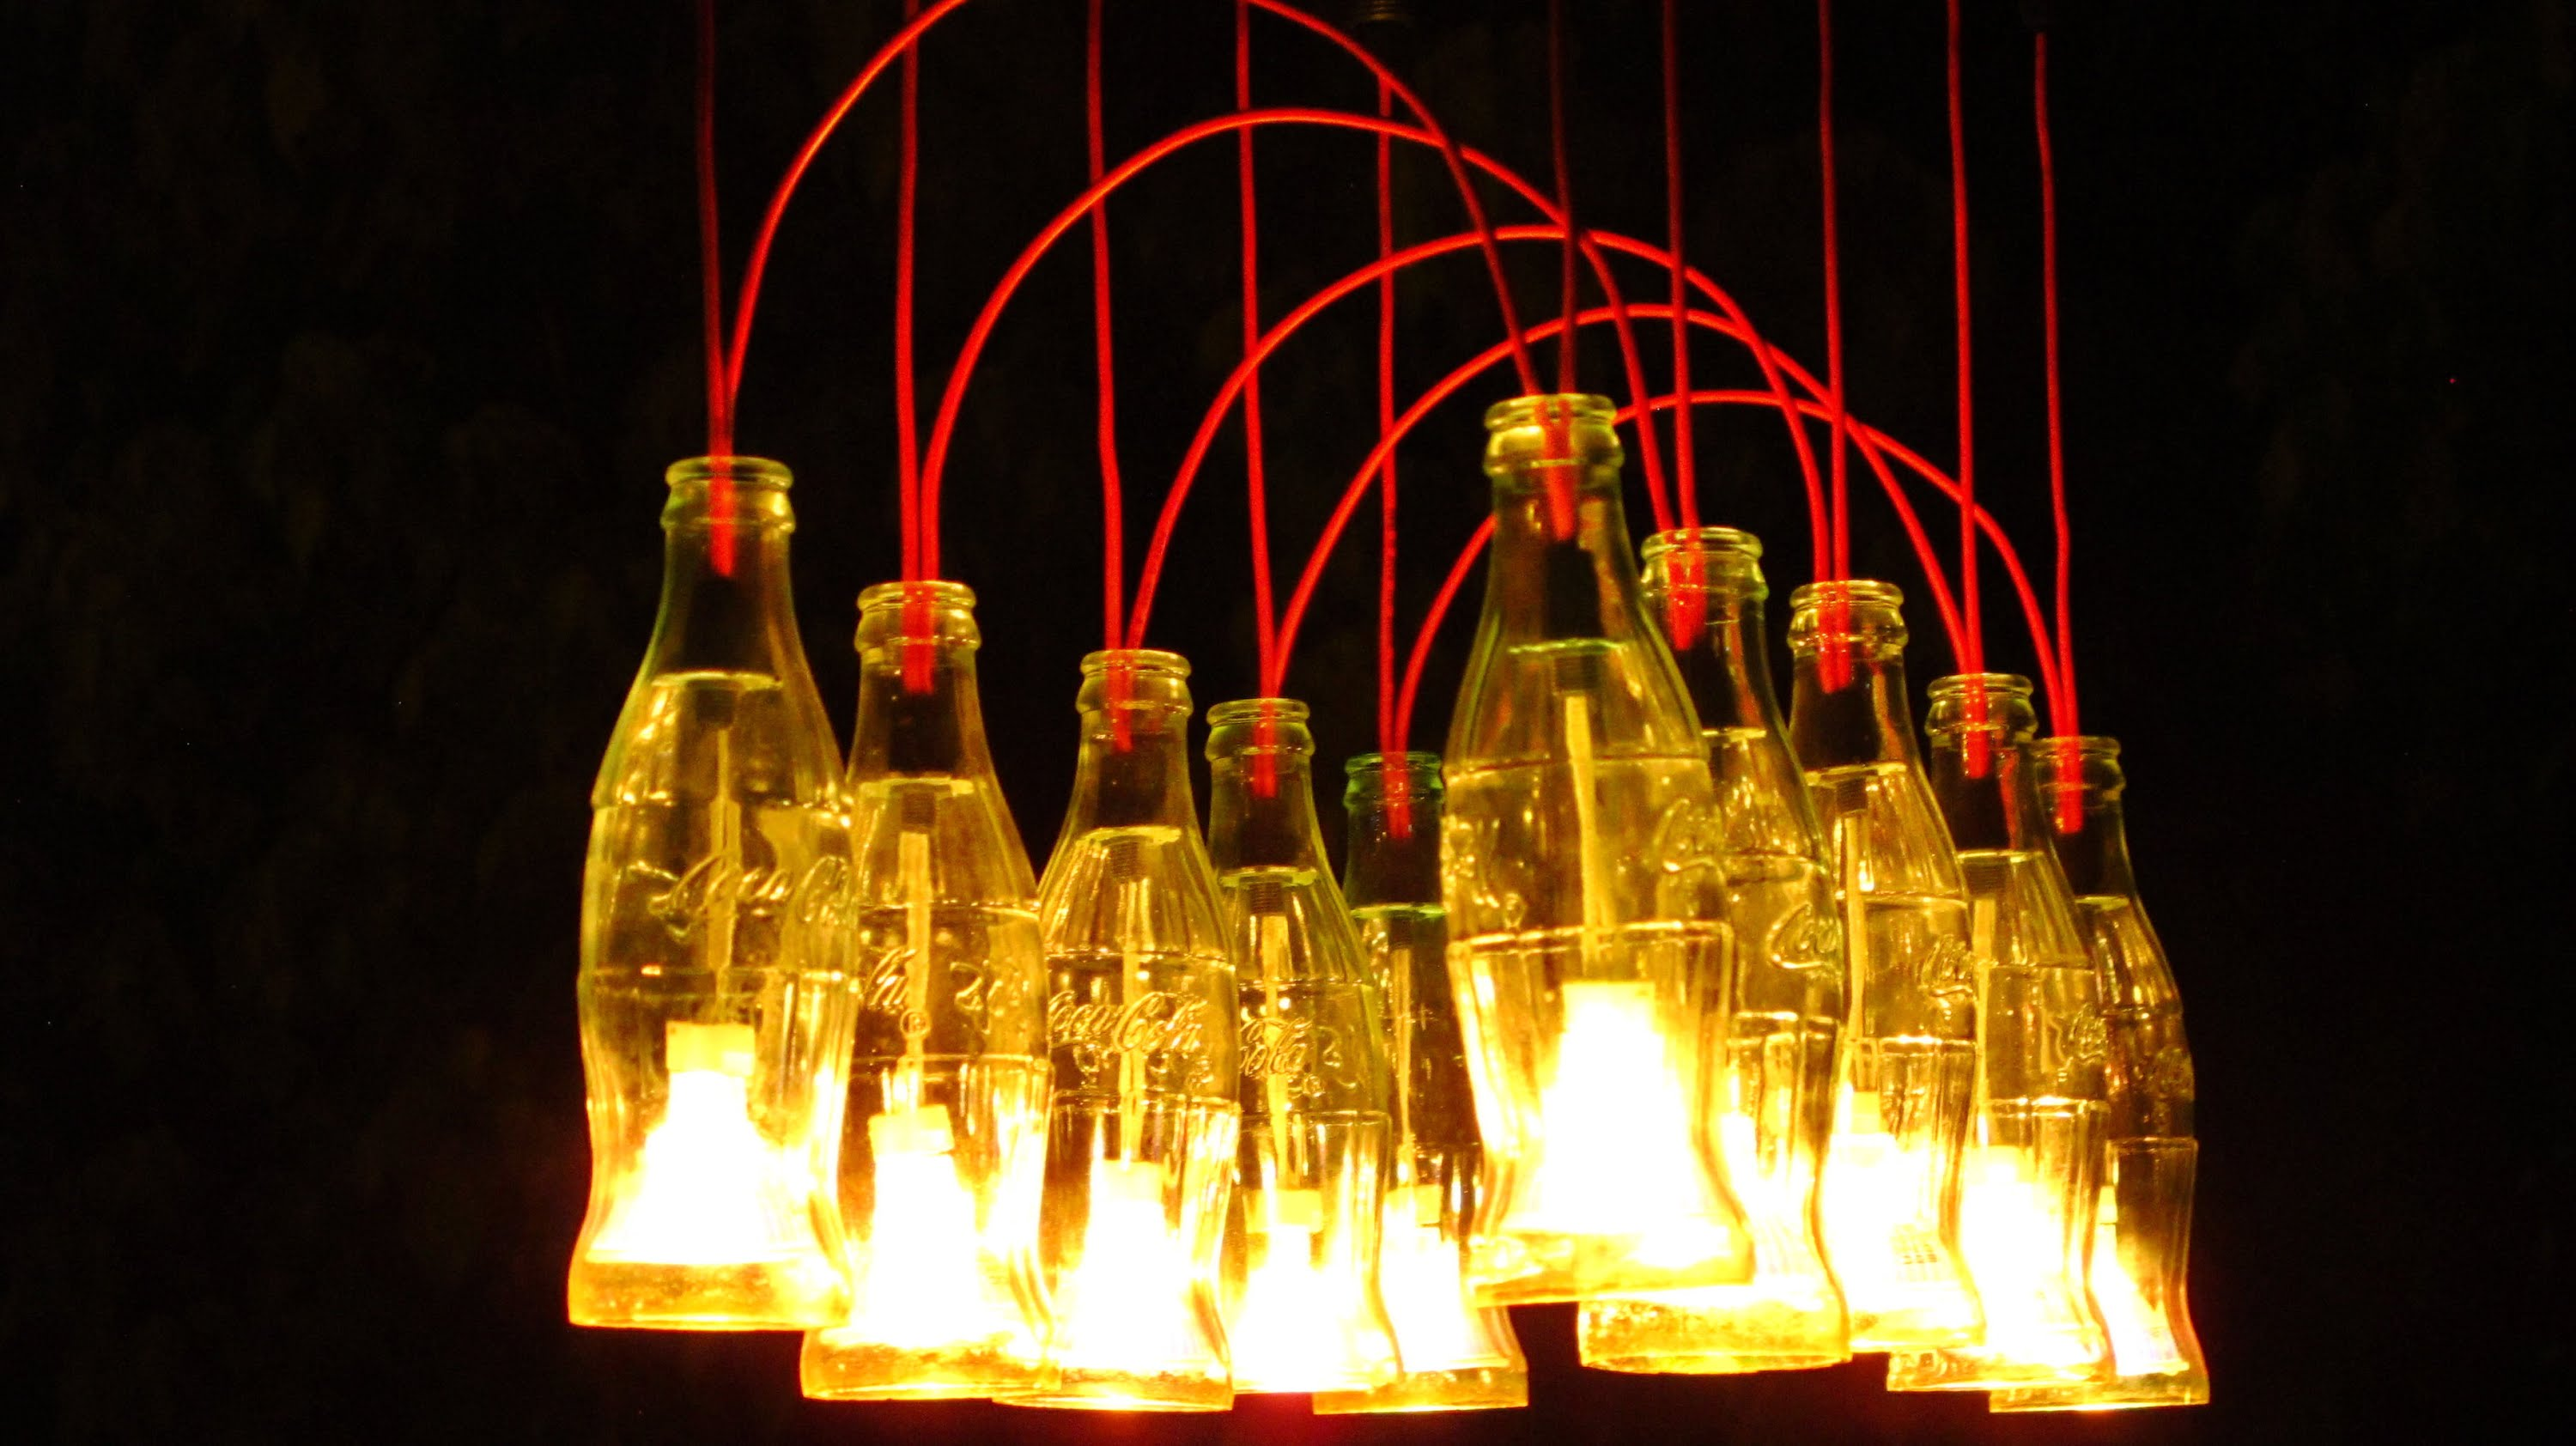 Coke bottle lamp 10 reasons to choose warisan lighting for How to make your own wine bottle chandelier